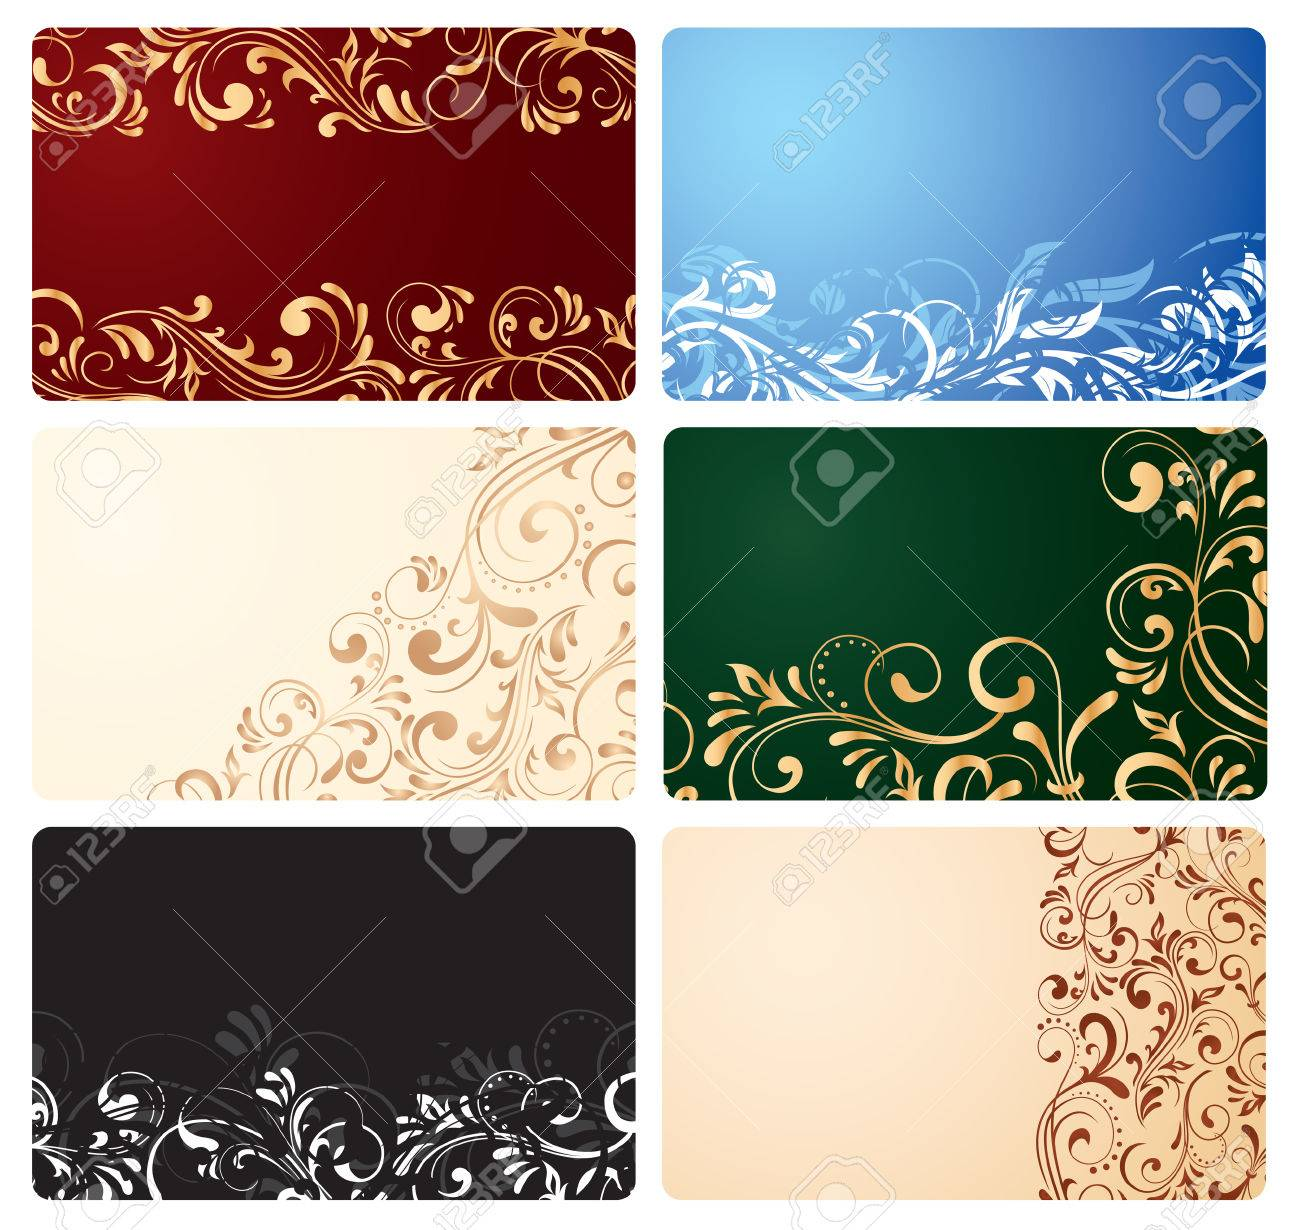 Set of business cards with ornate elements, illustration Stock Vector - 7478775